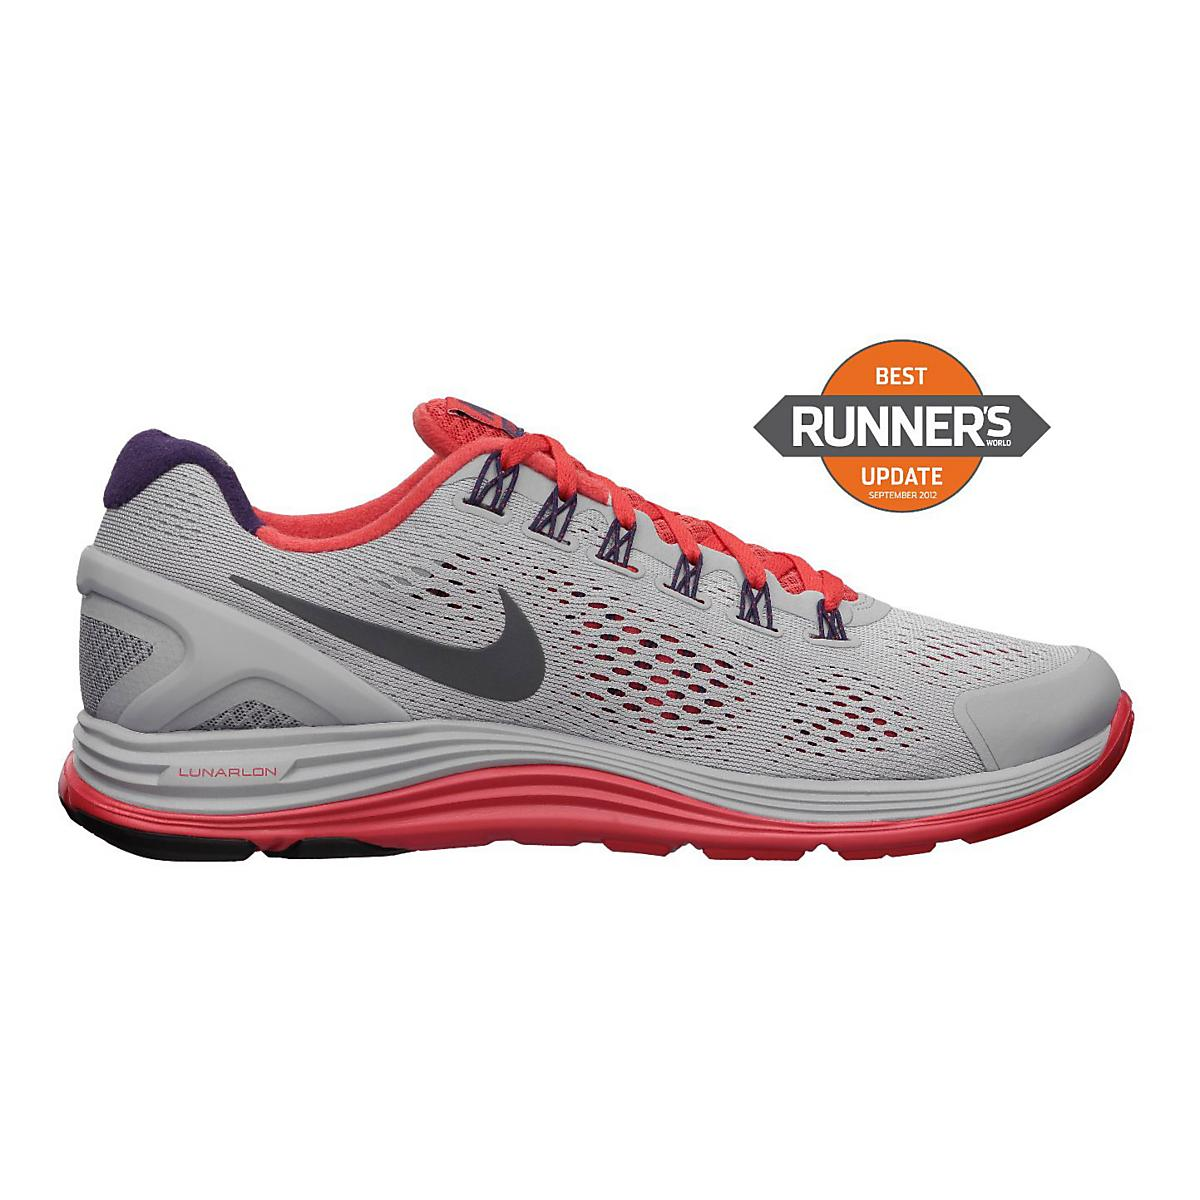 61c001301f249 Mens Nike LunarGlide+ 4 Running Shoe at Road Runner Sports